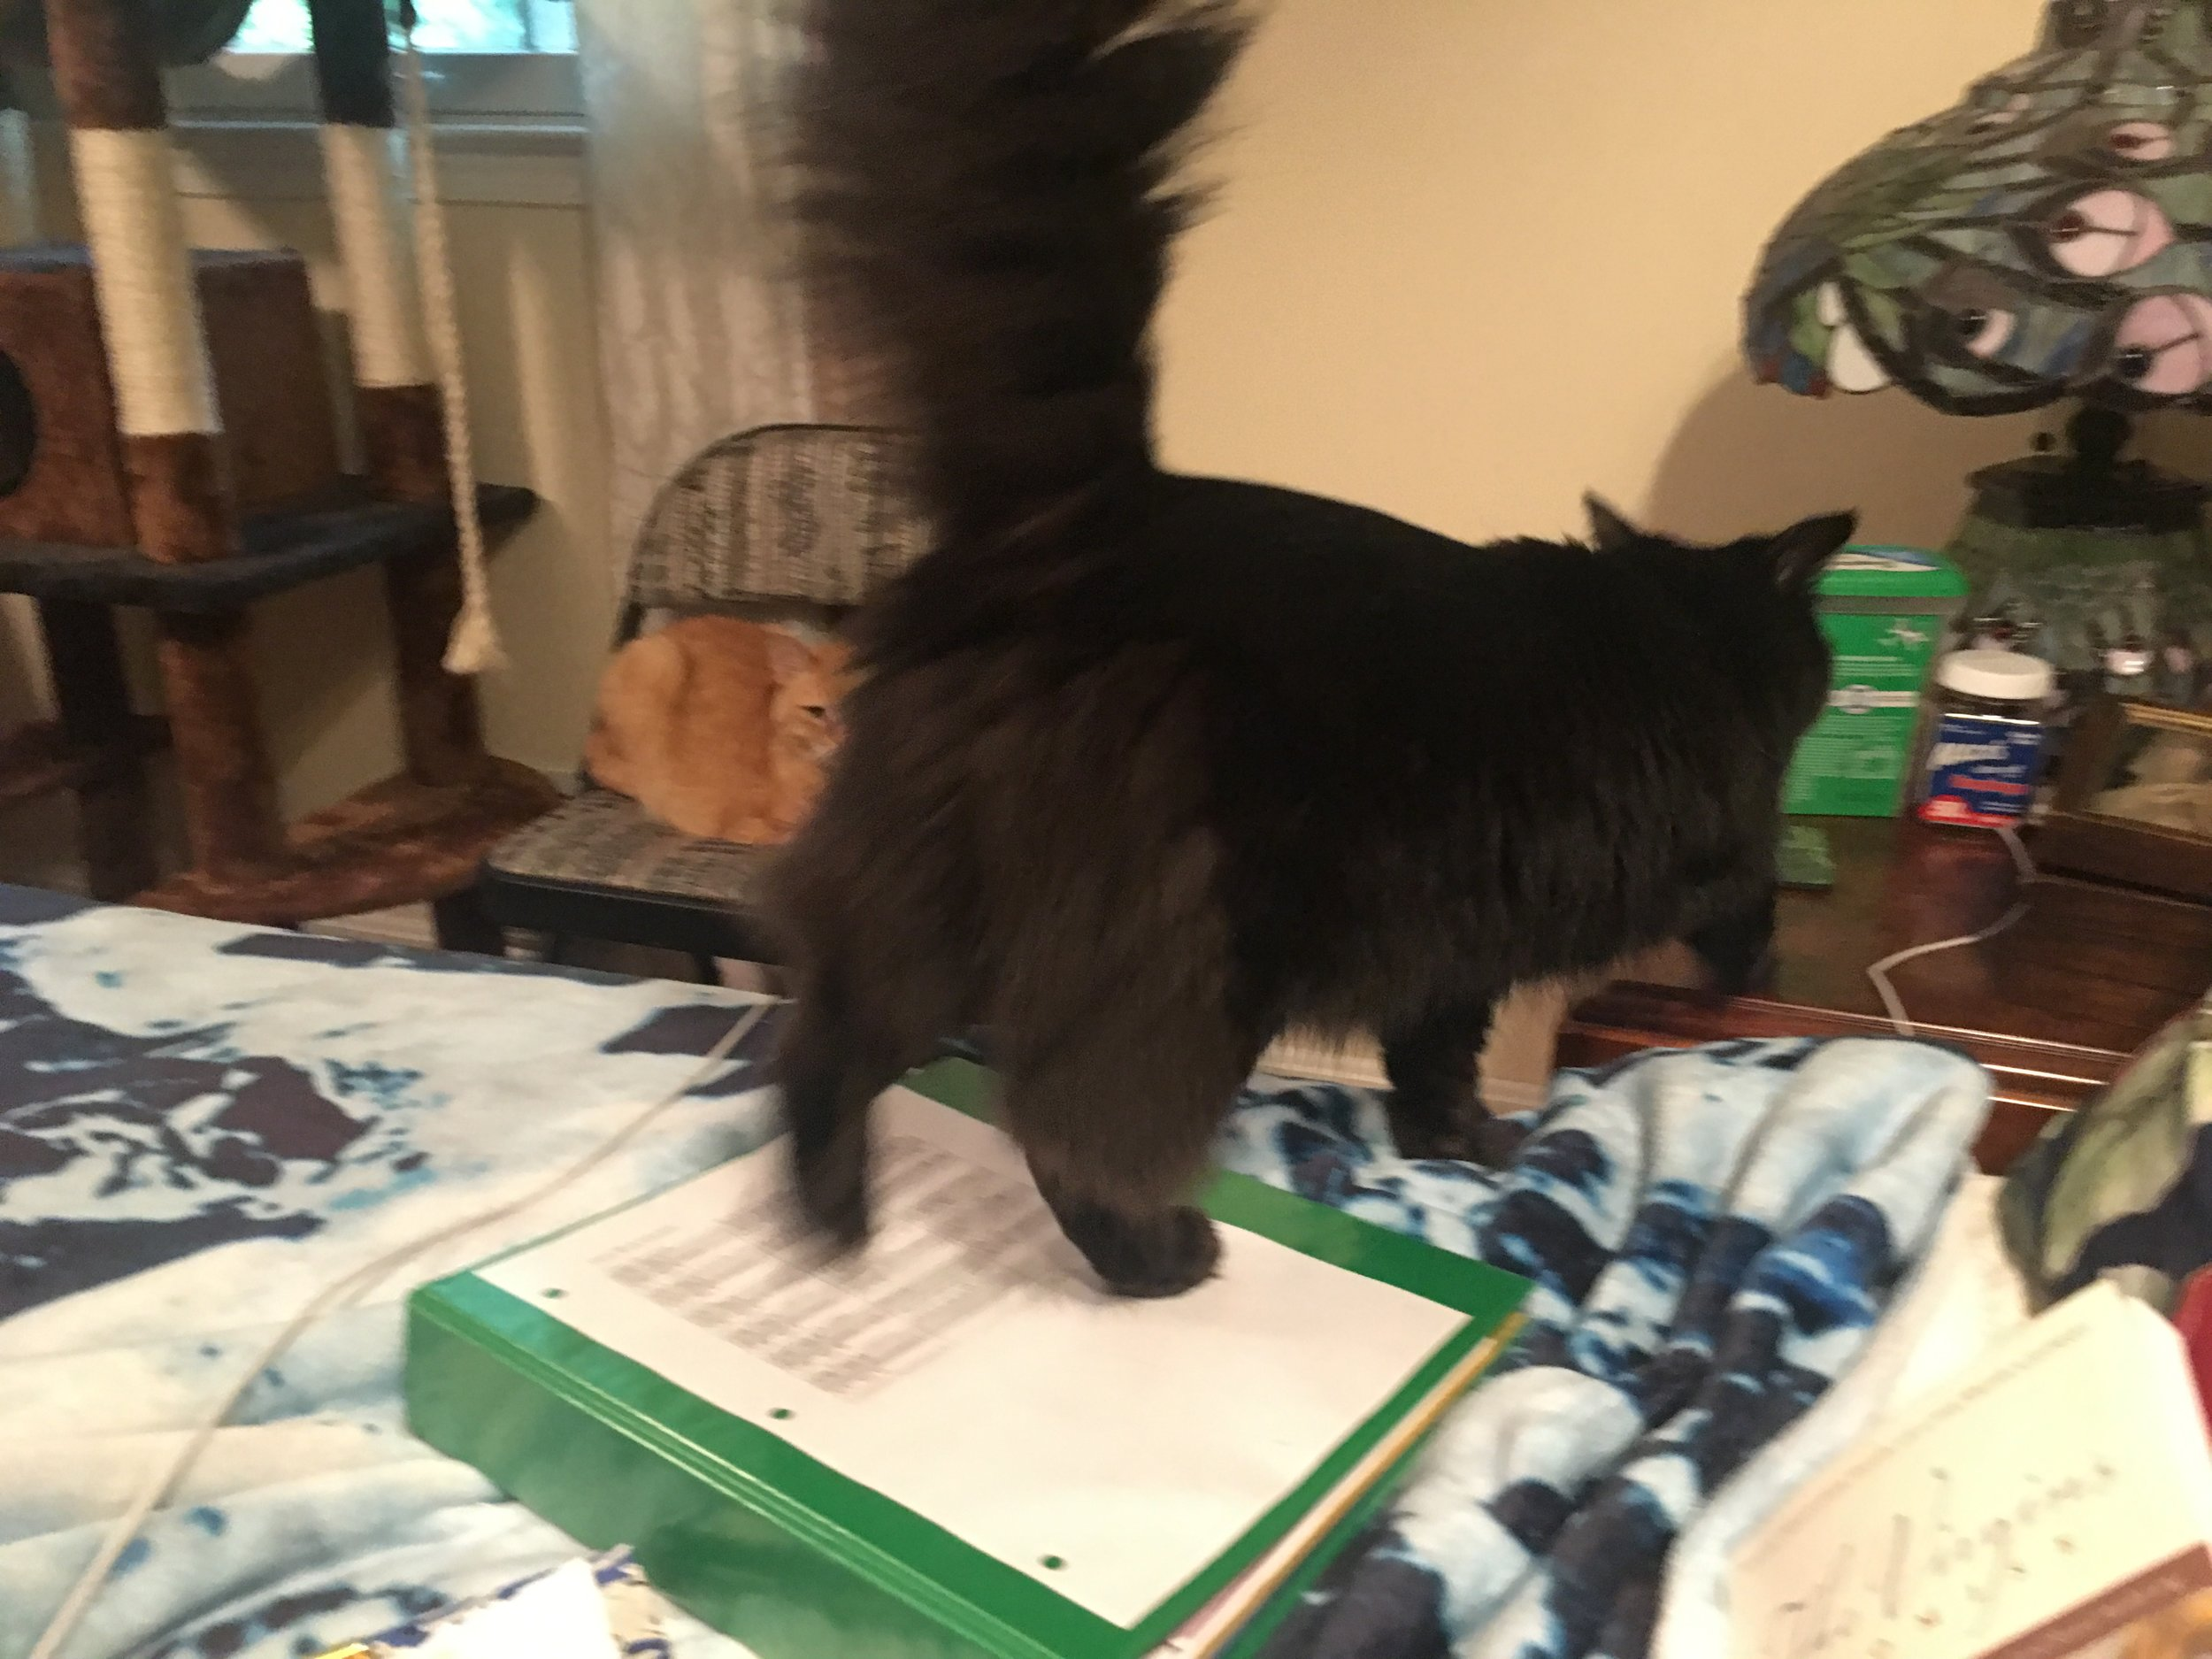 Not the greatest cat pic of the week, but I think it speaks to the gist of the week…Rachel's school stuff spread all over the bed, while I work, Bear ignoring it and trying to get a treat, Homer watching in the background (judgmentally).